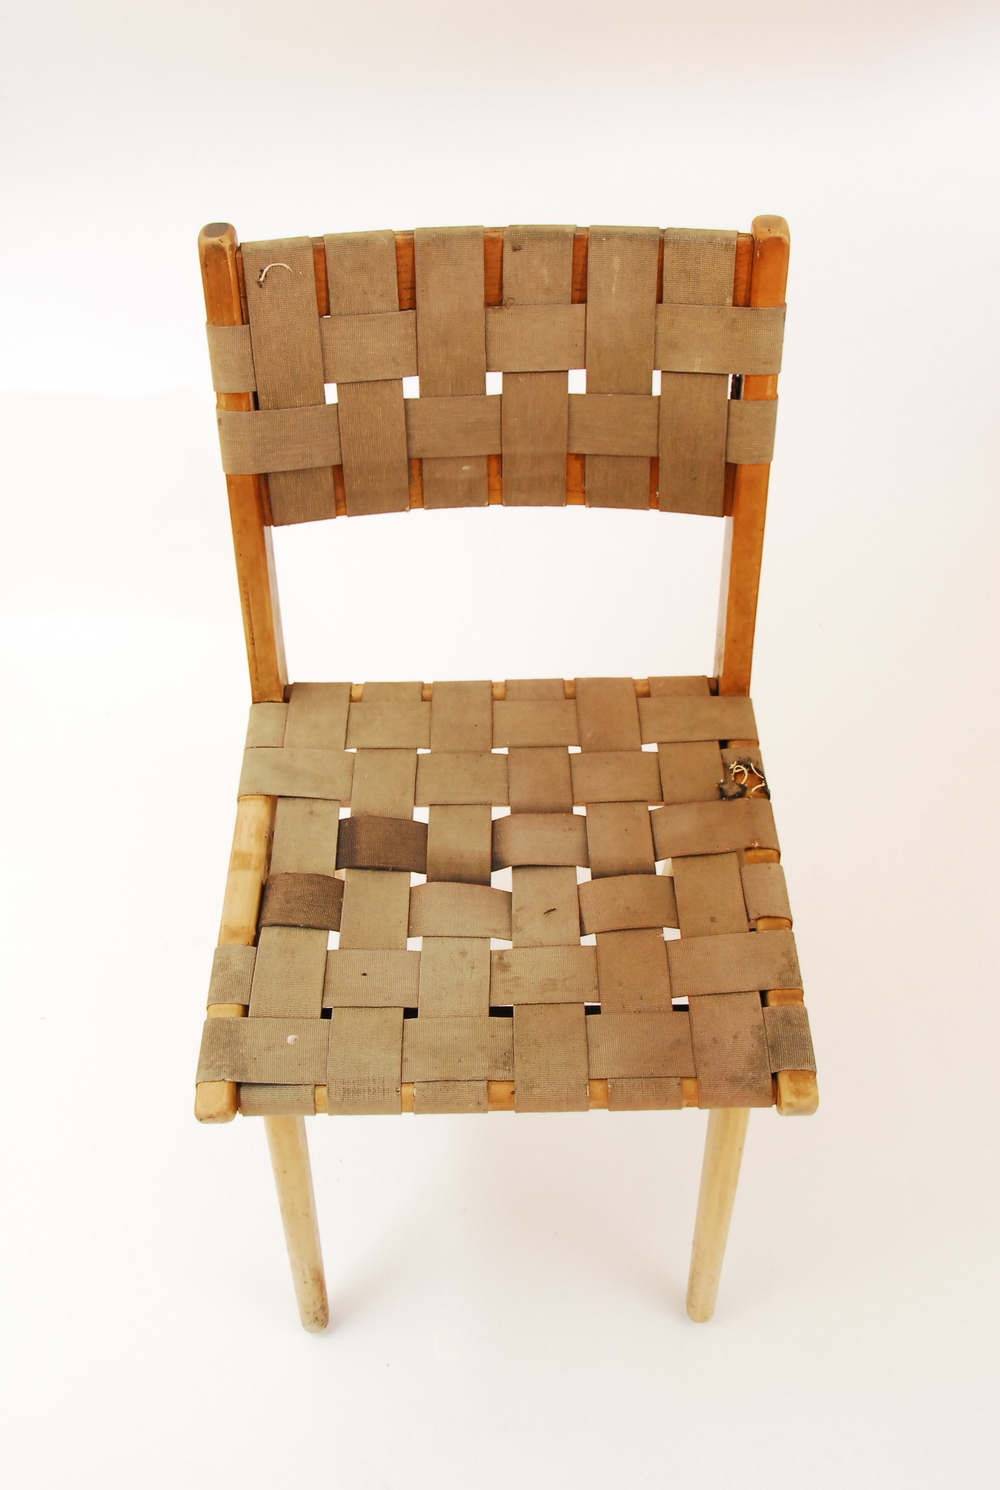 studio_nicco_chair__1339.JPG